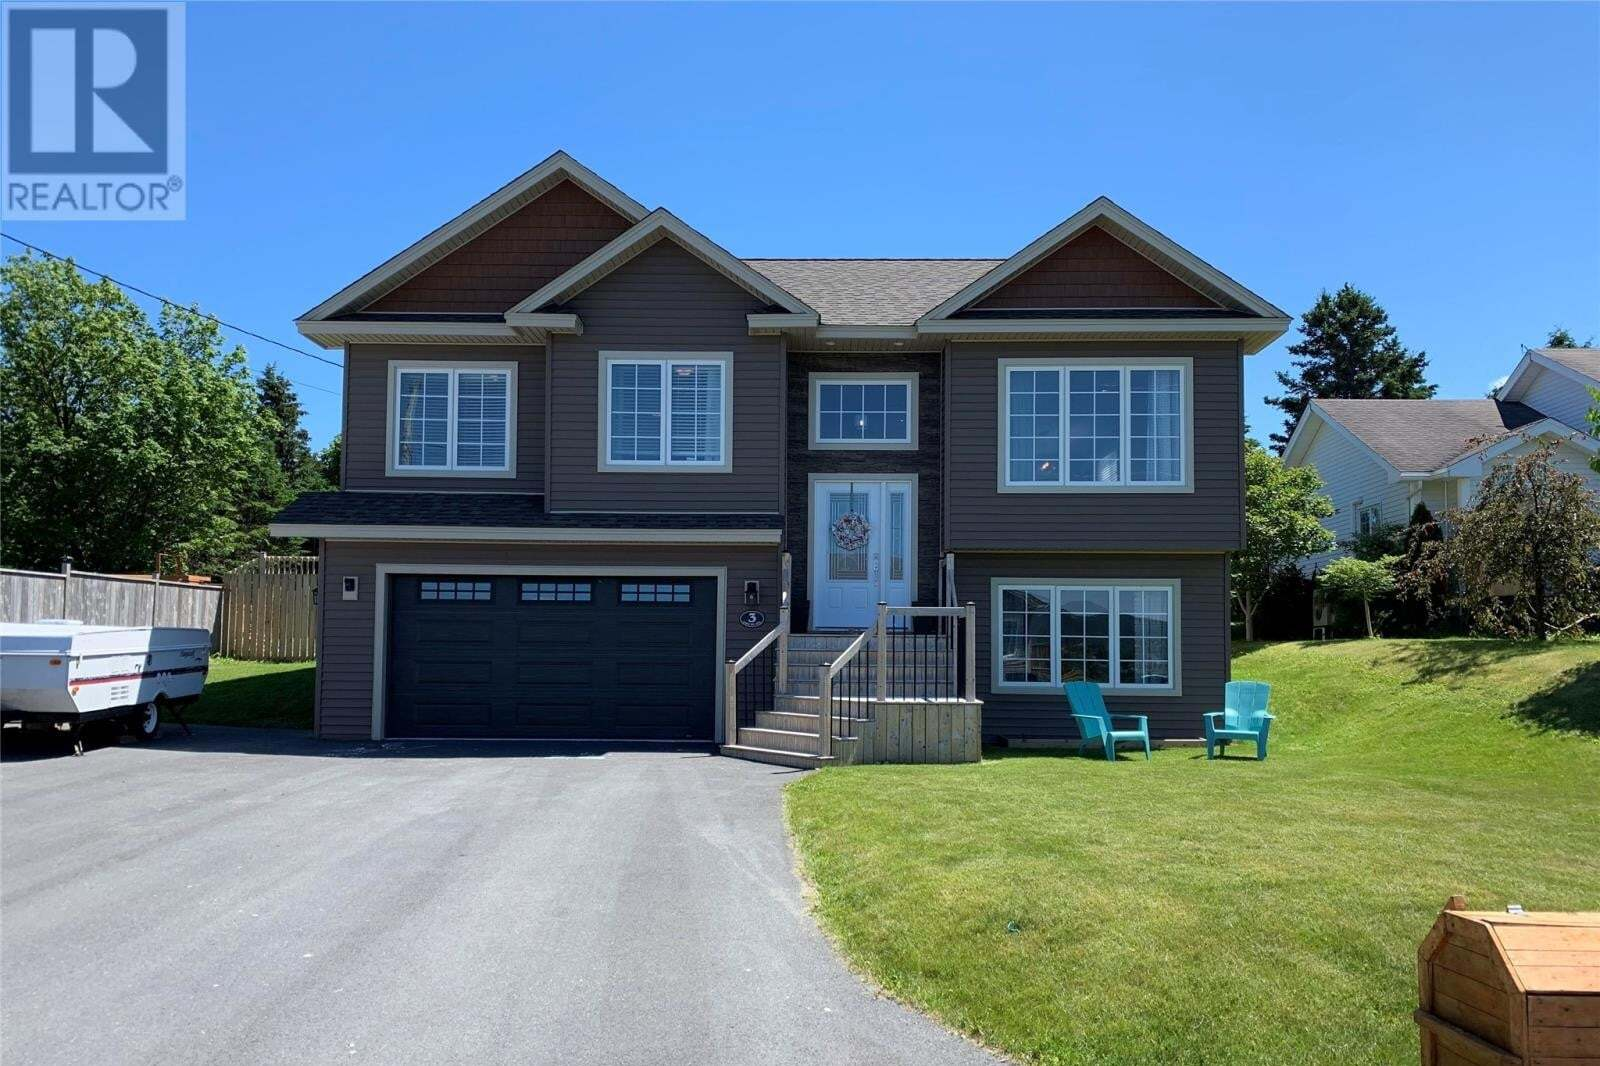 House for sale at 3 Love Street Extension Bay Roberts Newfoundland - MLS: 1217312